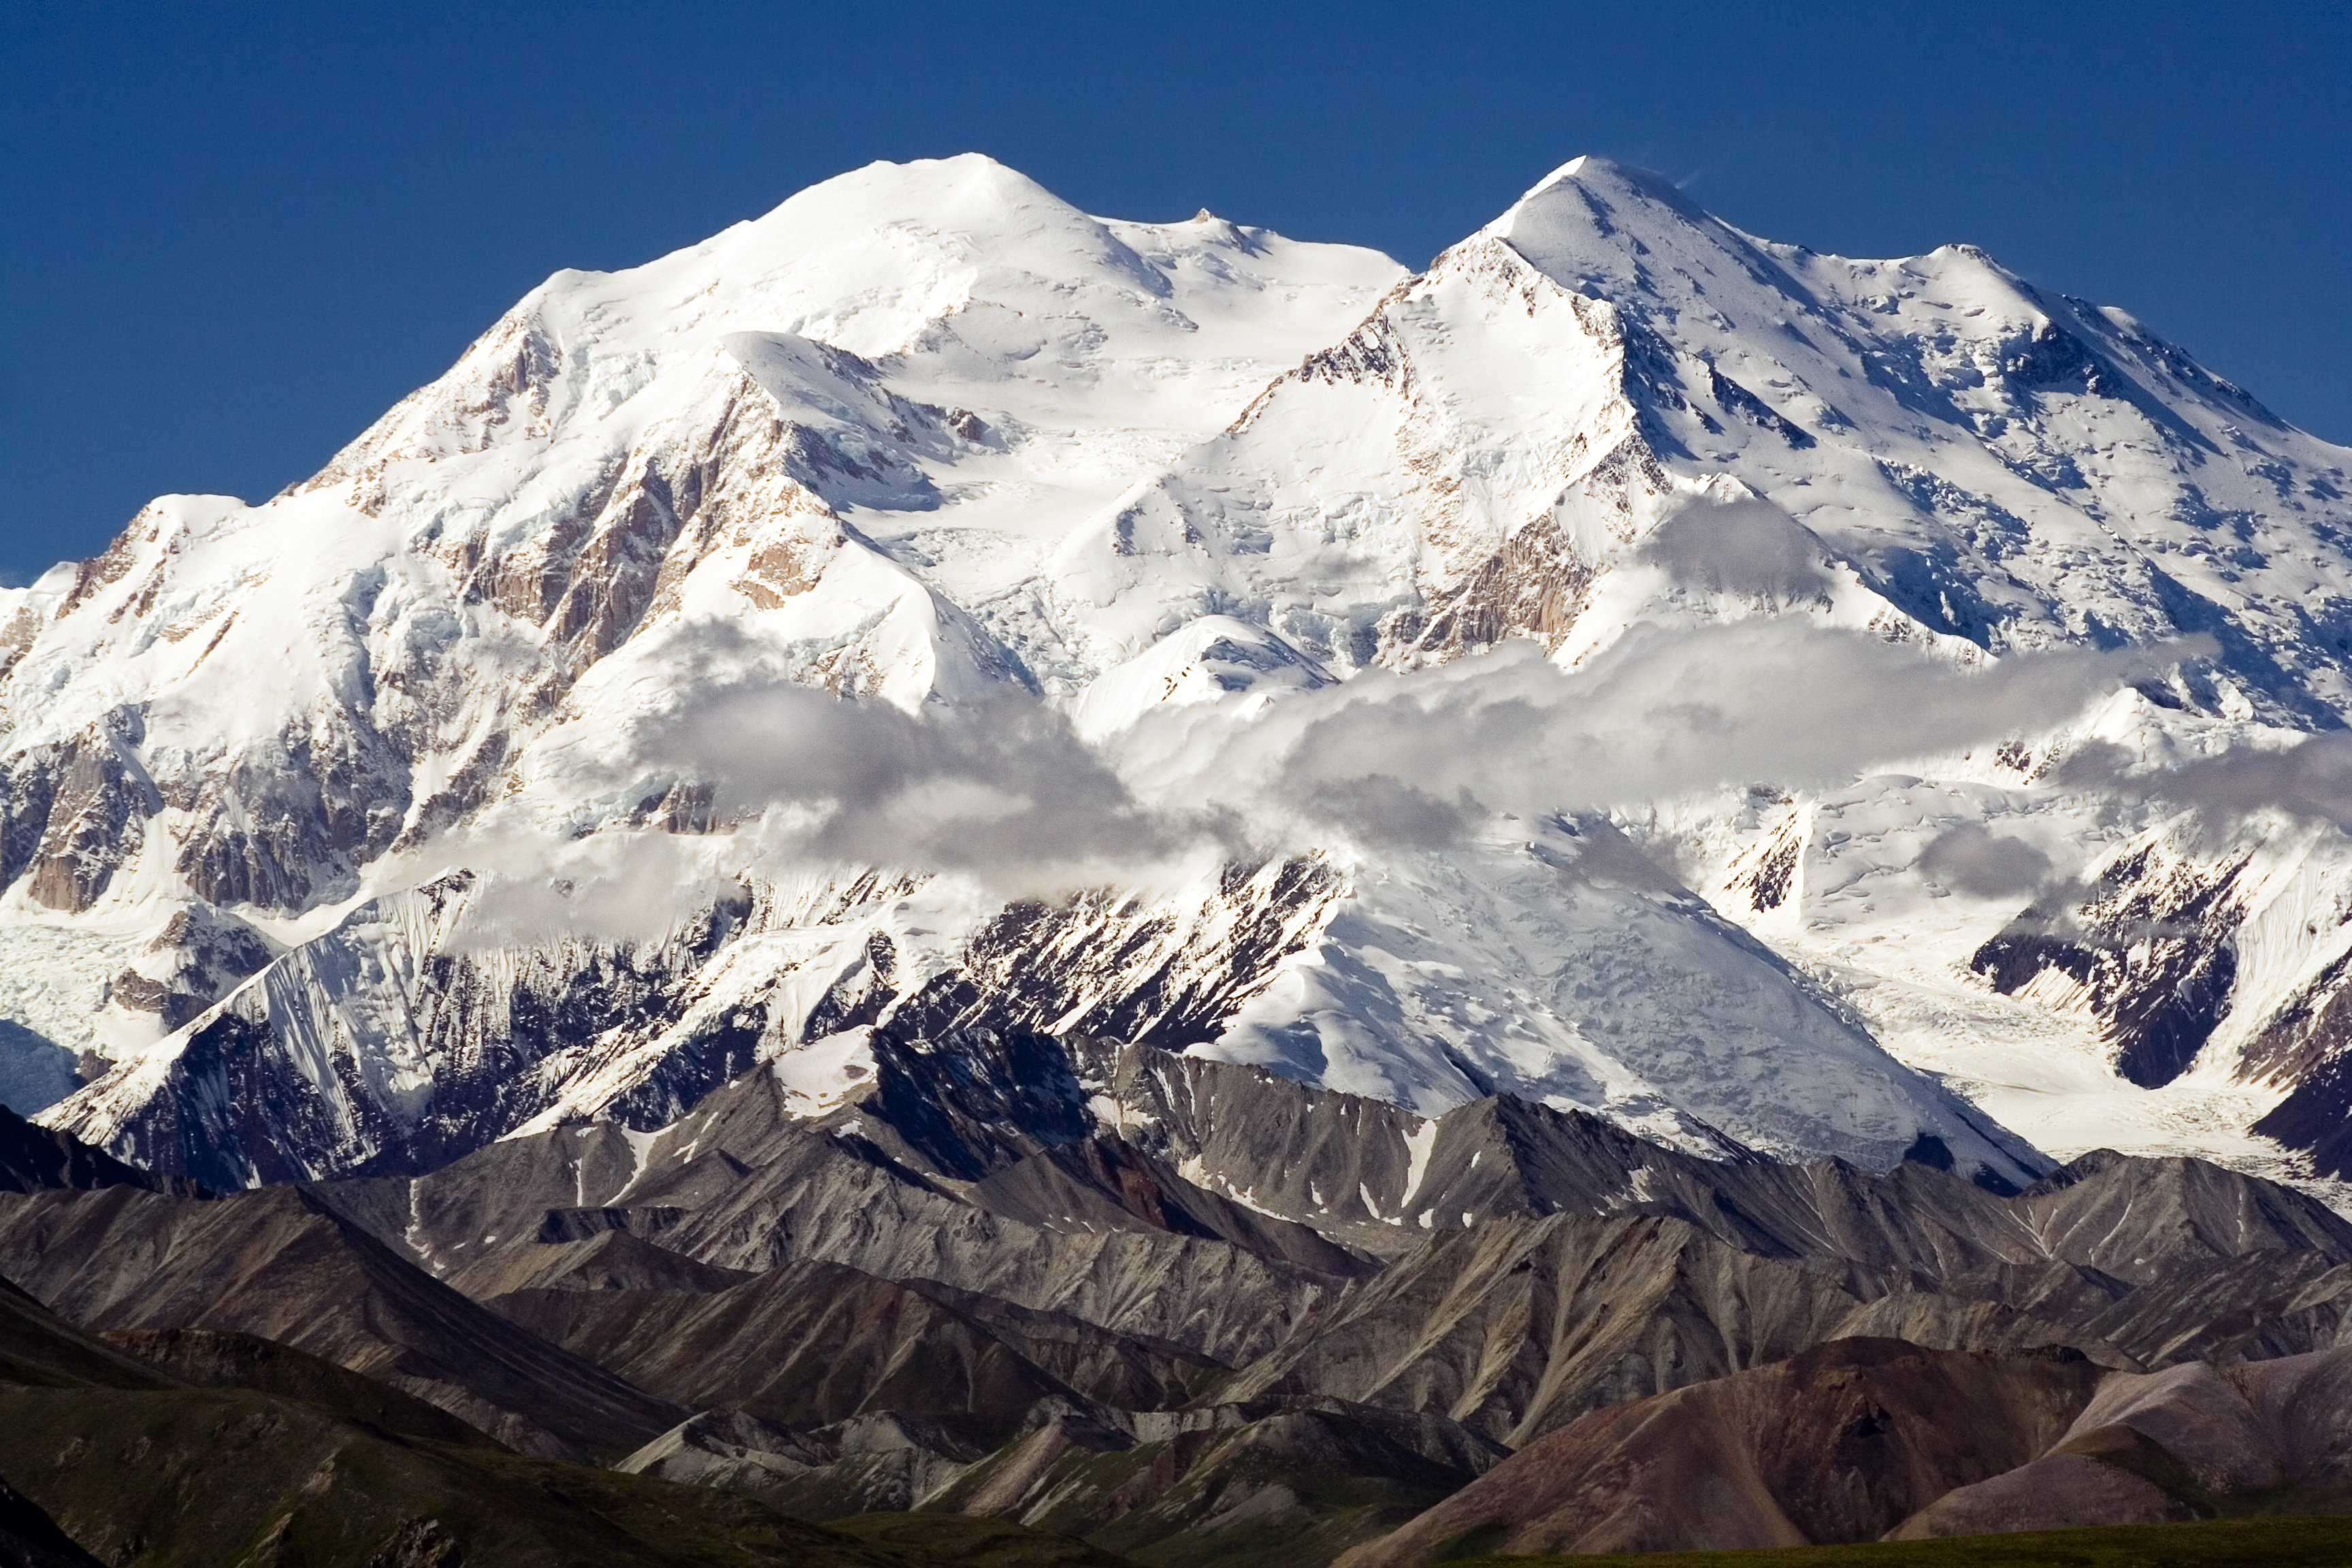 23 - Wanna climb Mount Everest? Just go to Mount Mckinley, AK. It's a pretty tall mountain, and only about 9,000 feet shorter than Everest.